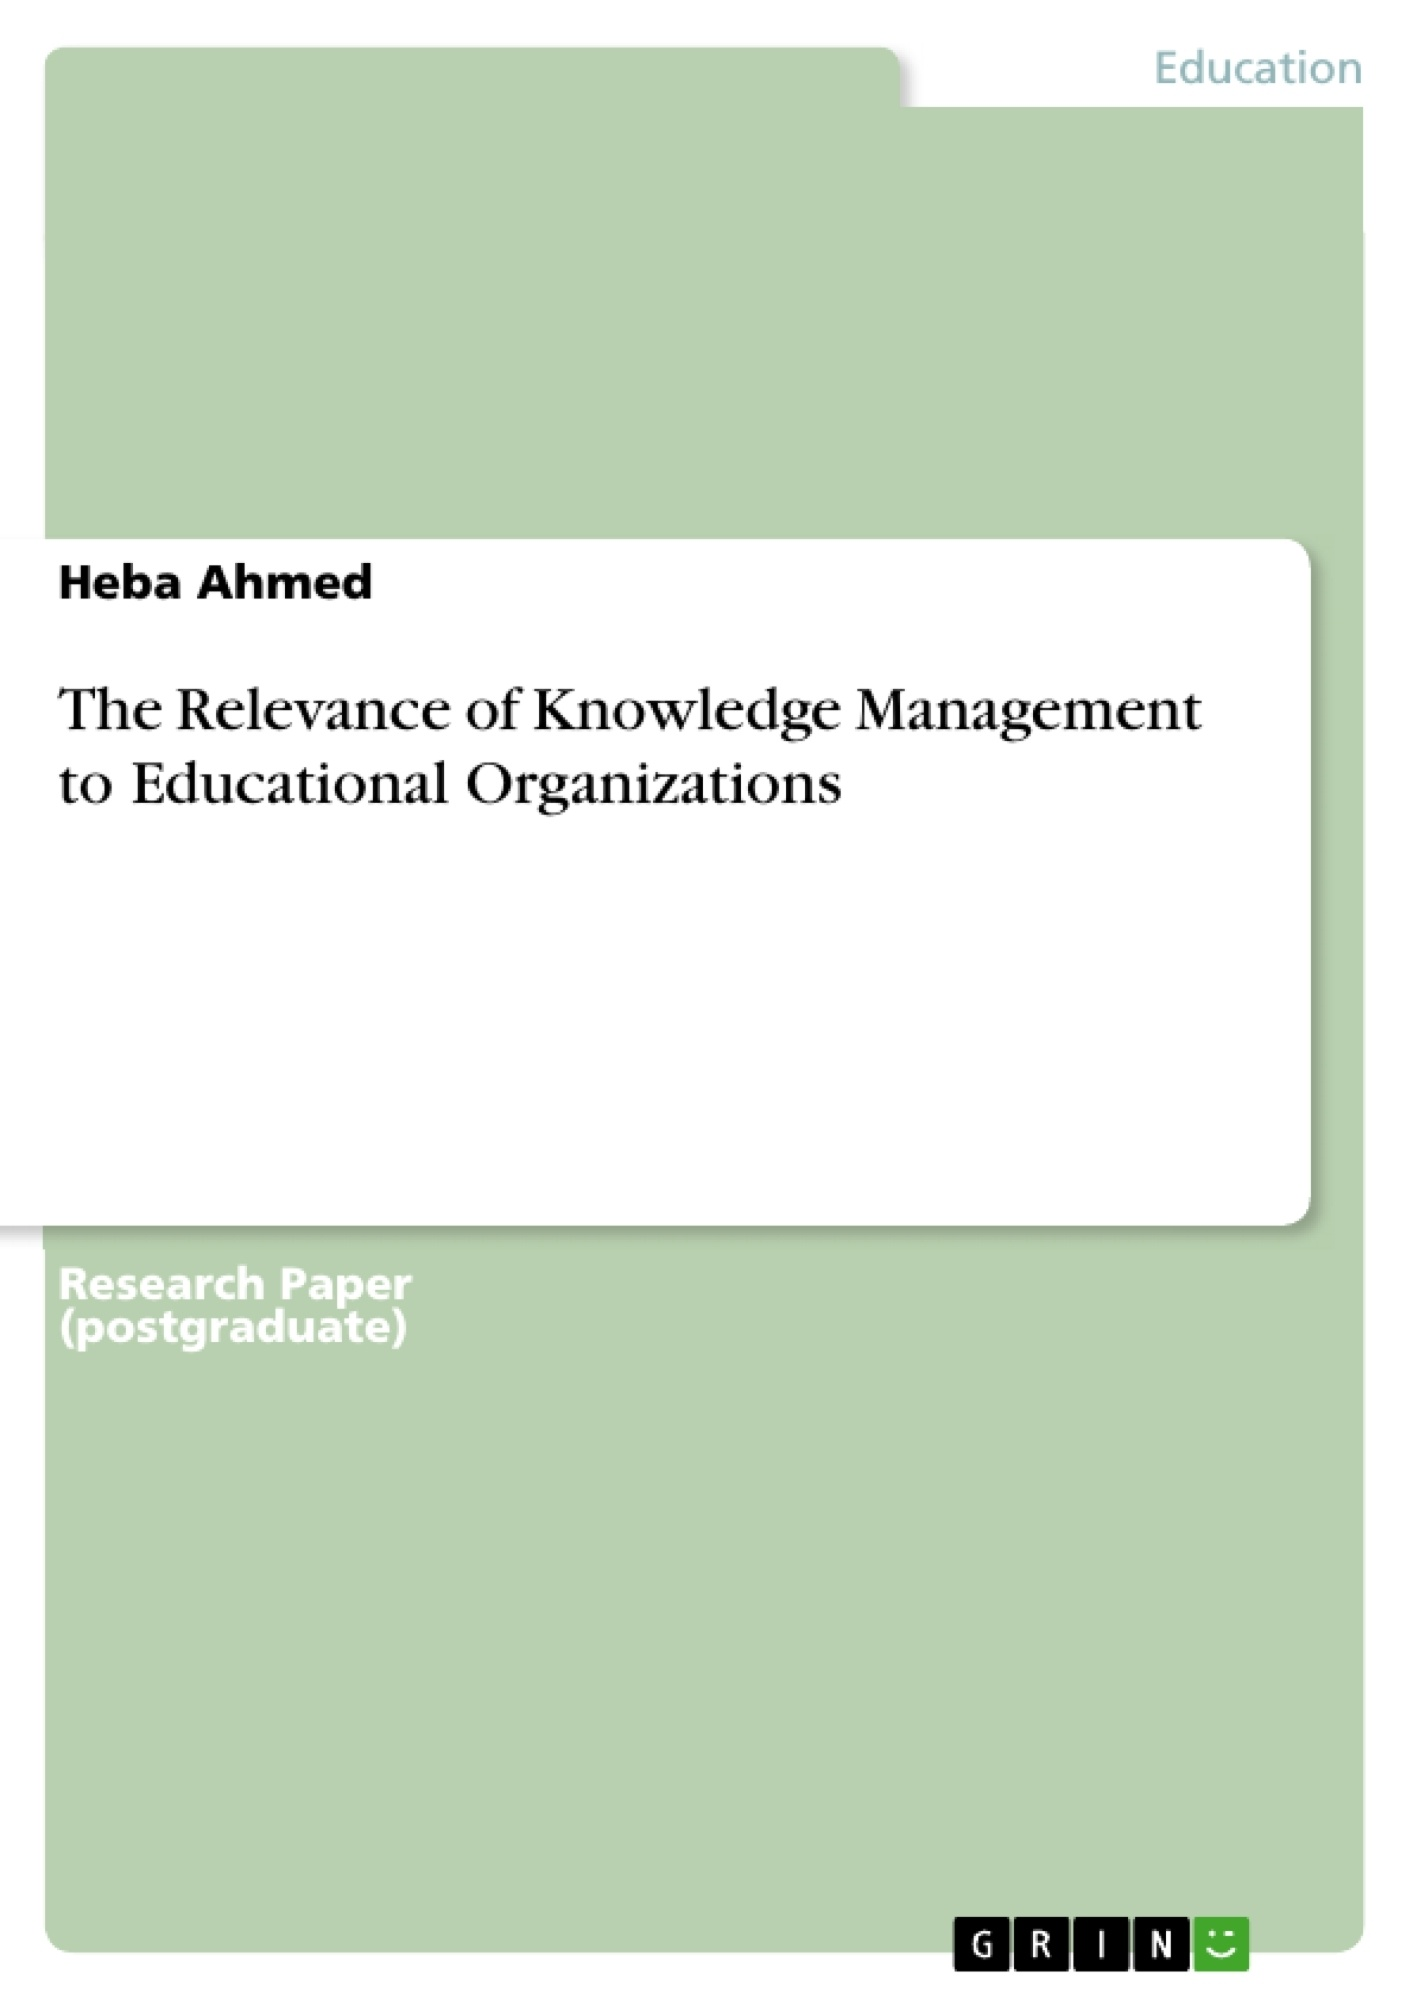 Title: The Relevance of Knowledge Management to Educational Organizations